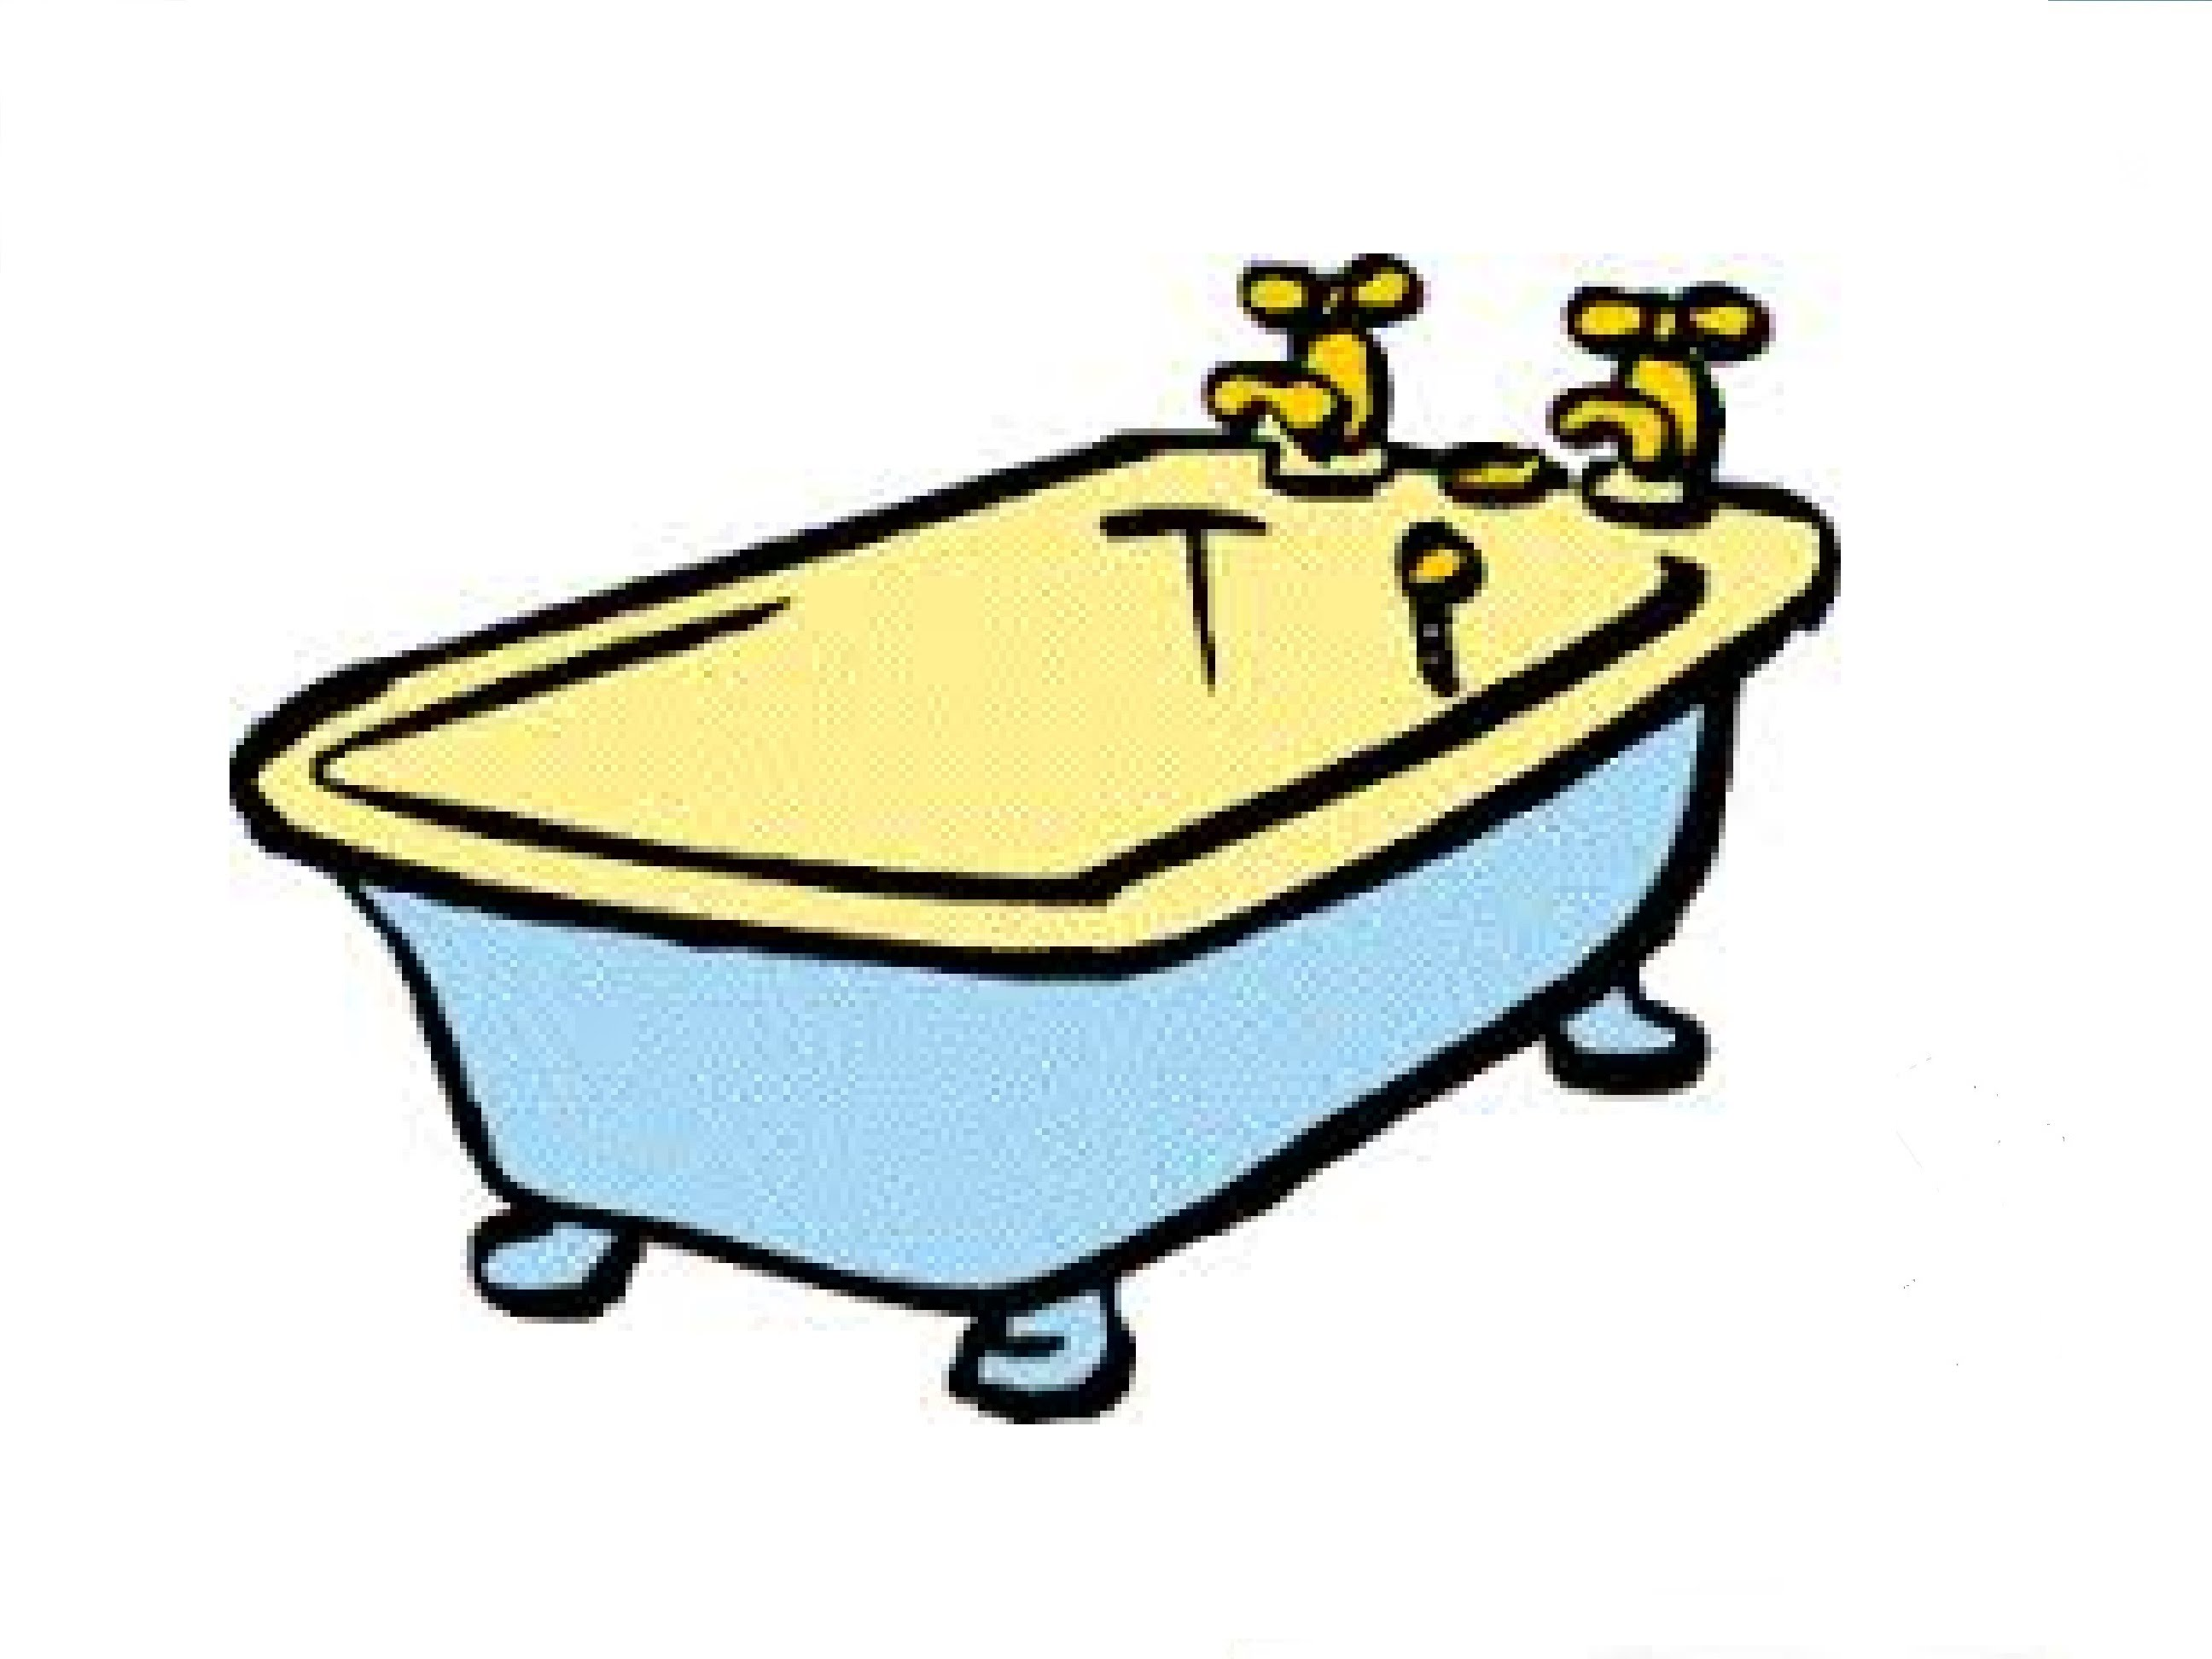 Drawing at getdrawings com. Tub clipart